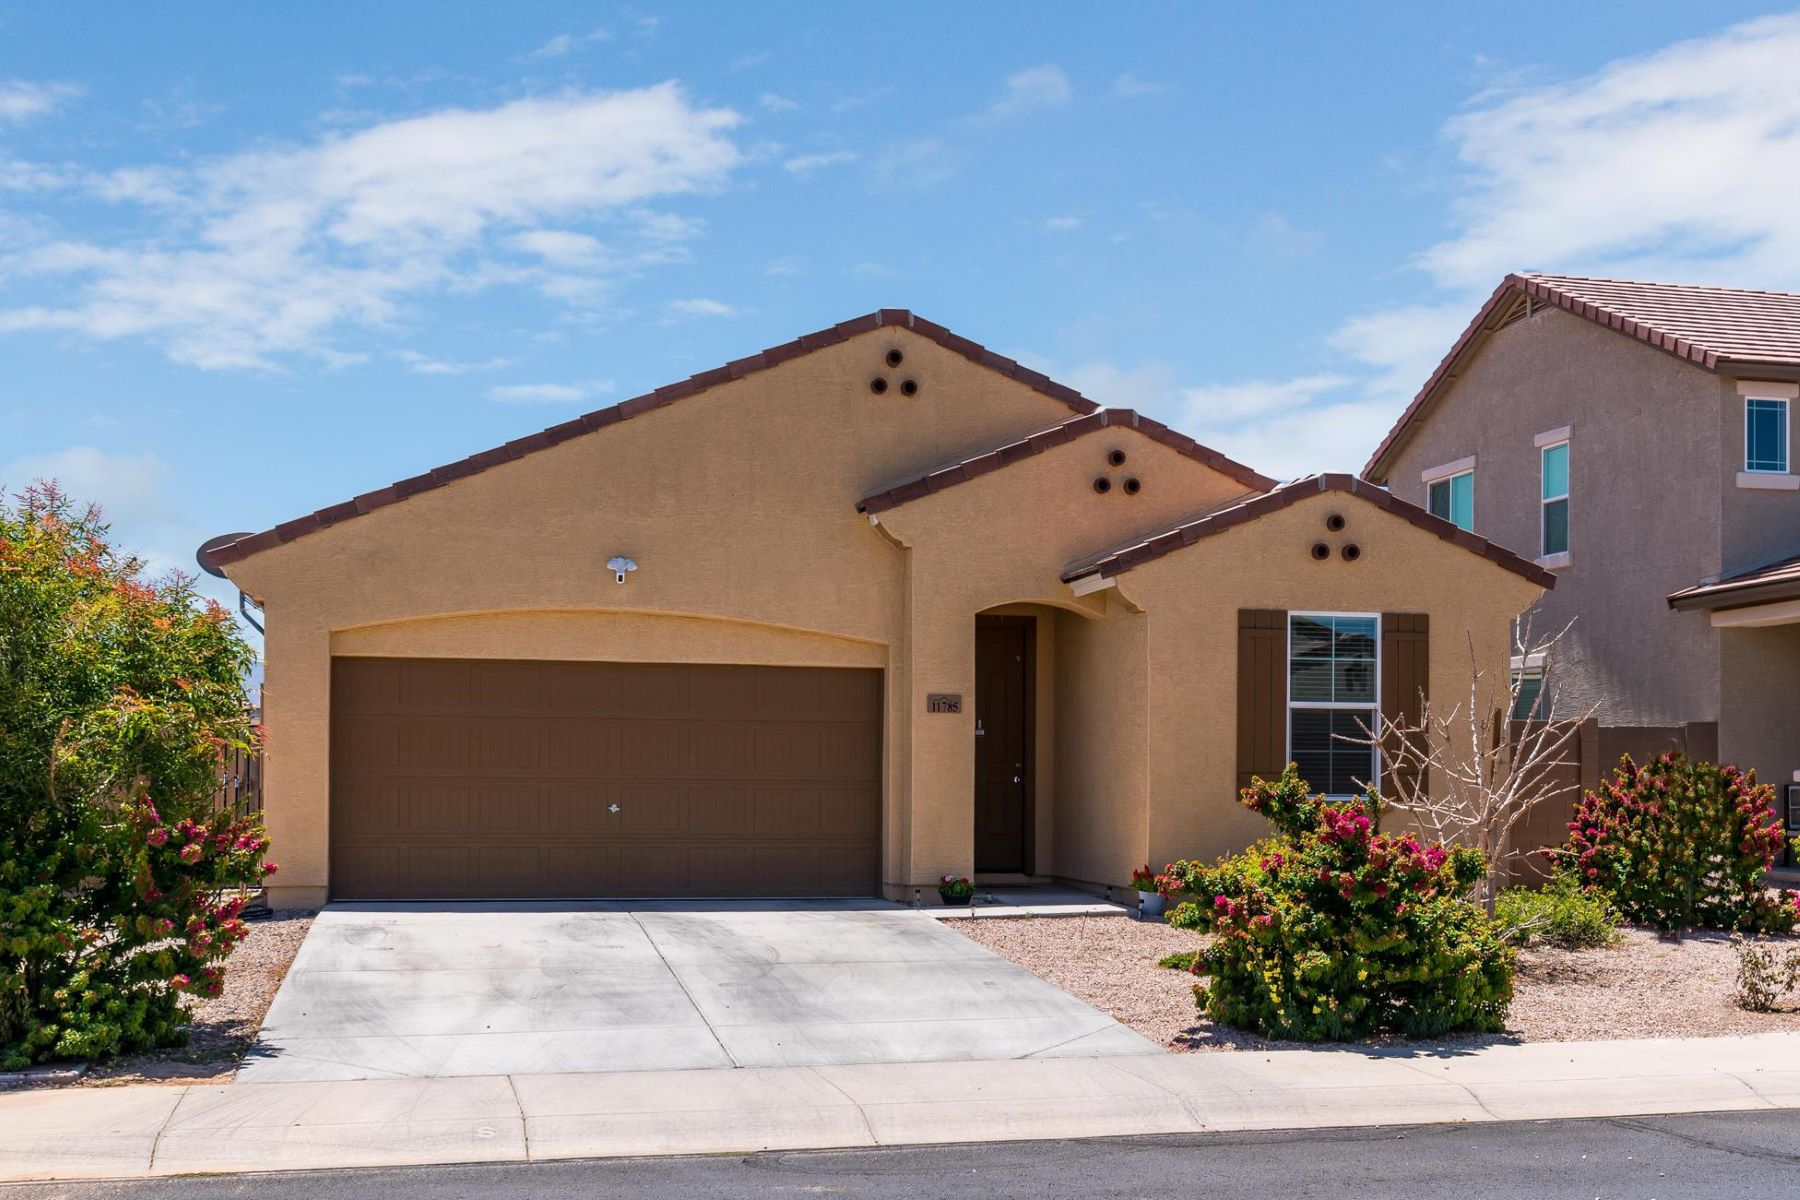 single family homes for Active at Del Rio Ranch 11785 W CHASE LN Avondale, Arizona 85323 United States